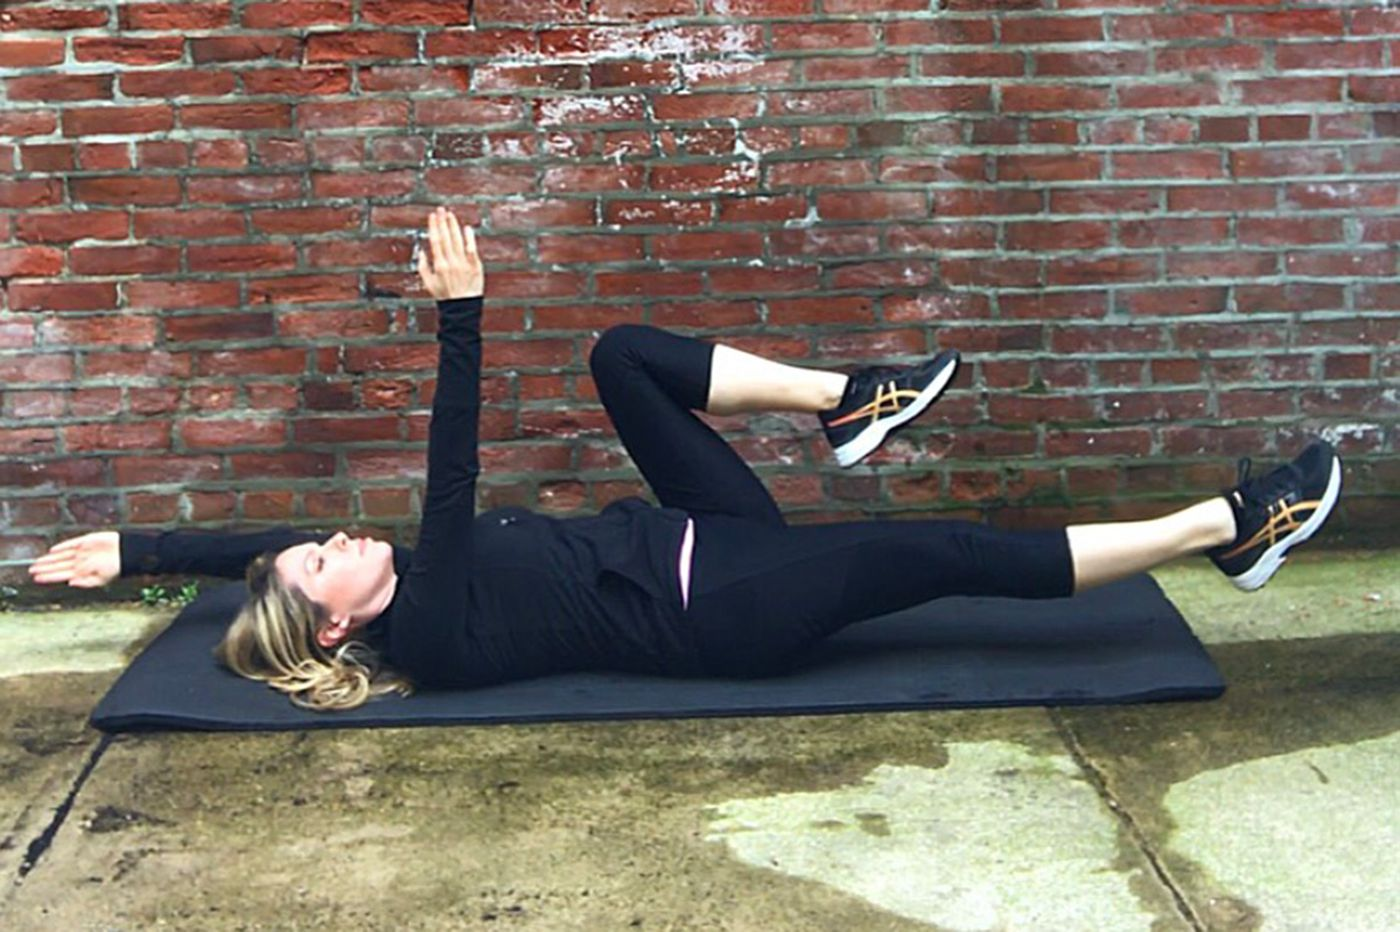 What is your core? 3 exercises to increase core strength.